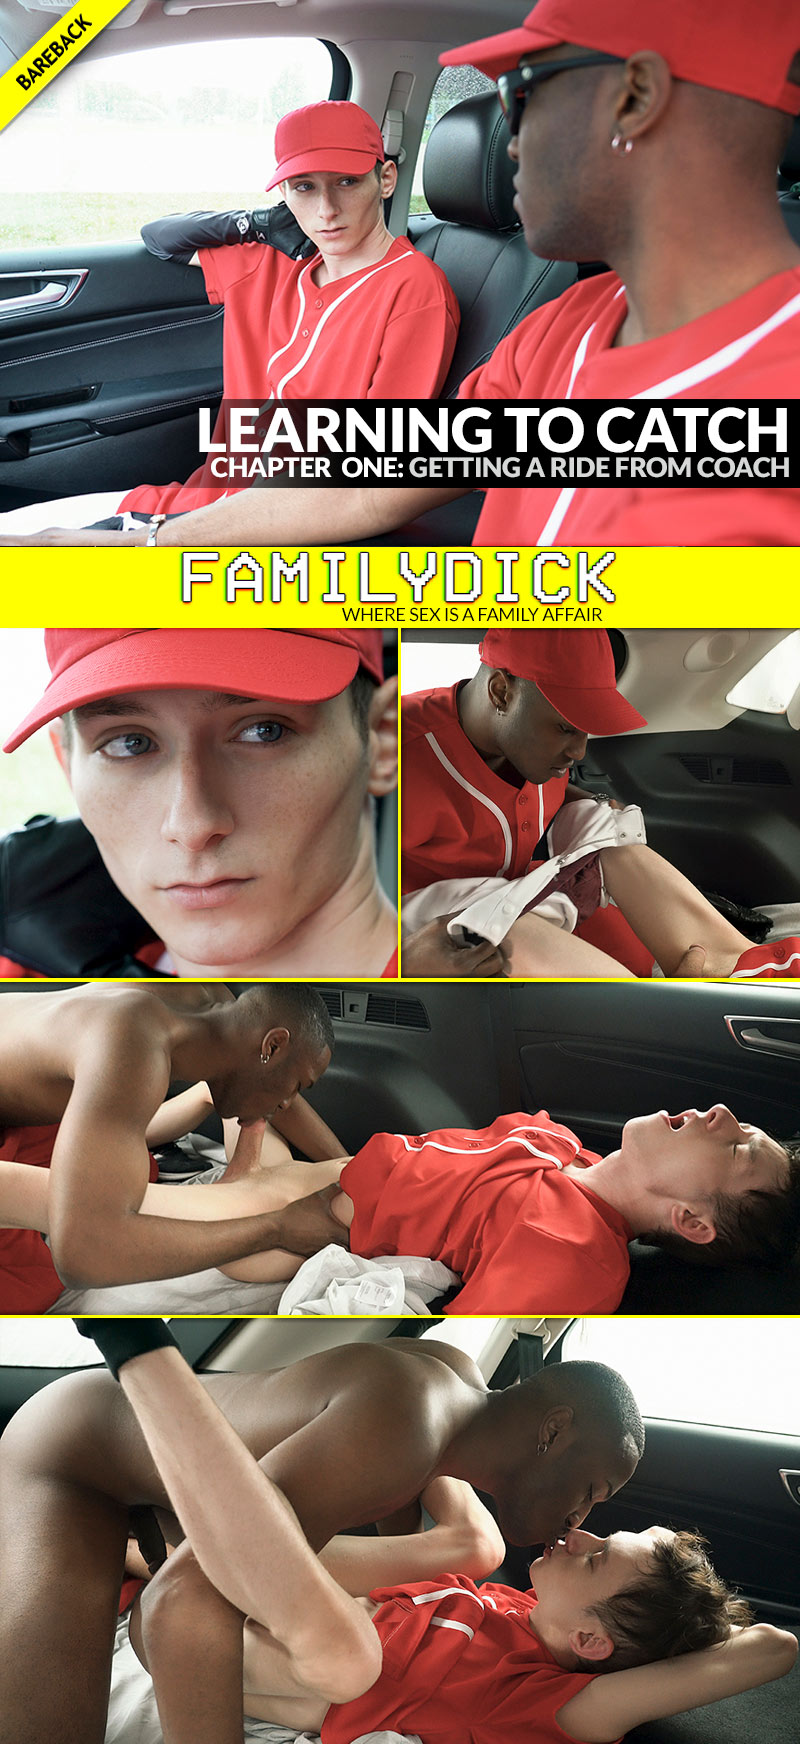 Learning To Catch, Chapter 1: Getting A Ride From Coach (with Ethan Thomson and Justin Stone) at FamilyDick